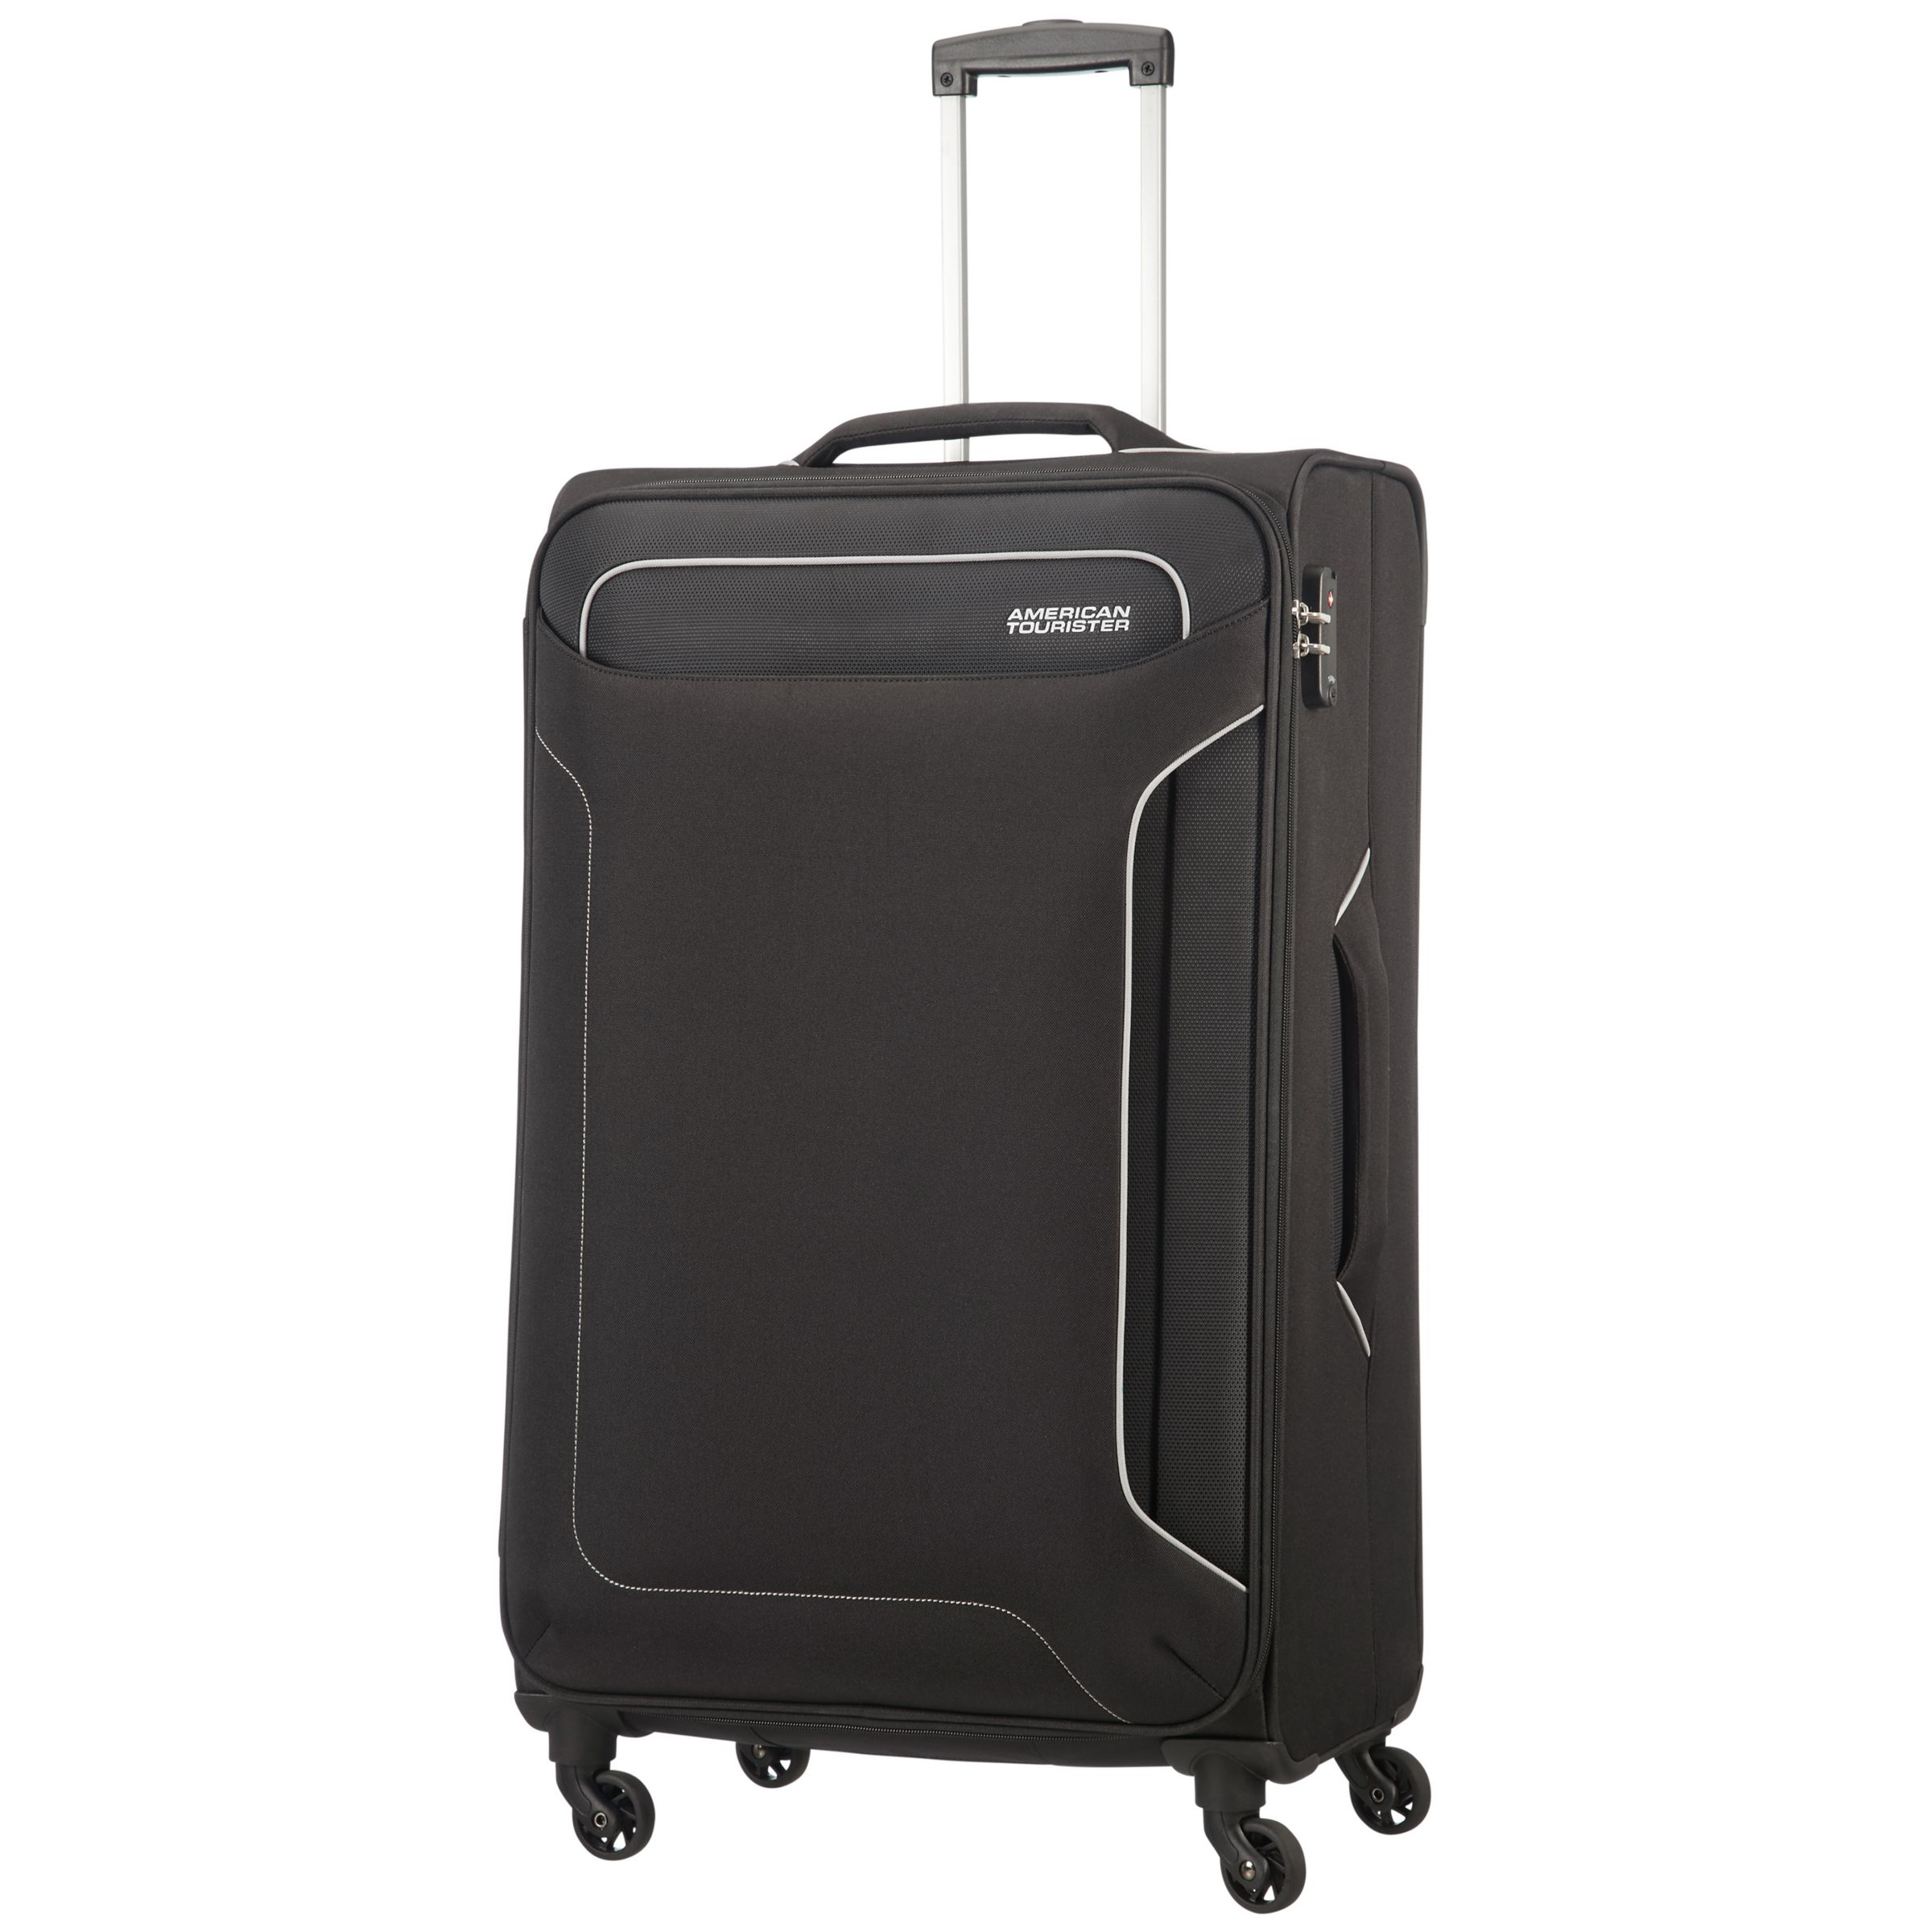 American Tourister American Tourister Holiday Heat 4-Spinner 79cm Large Suitcase